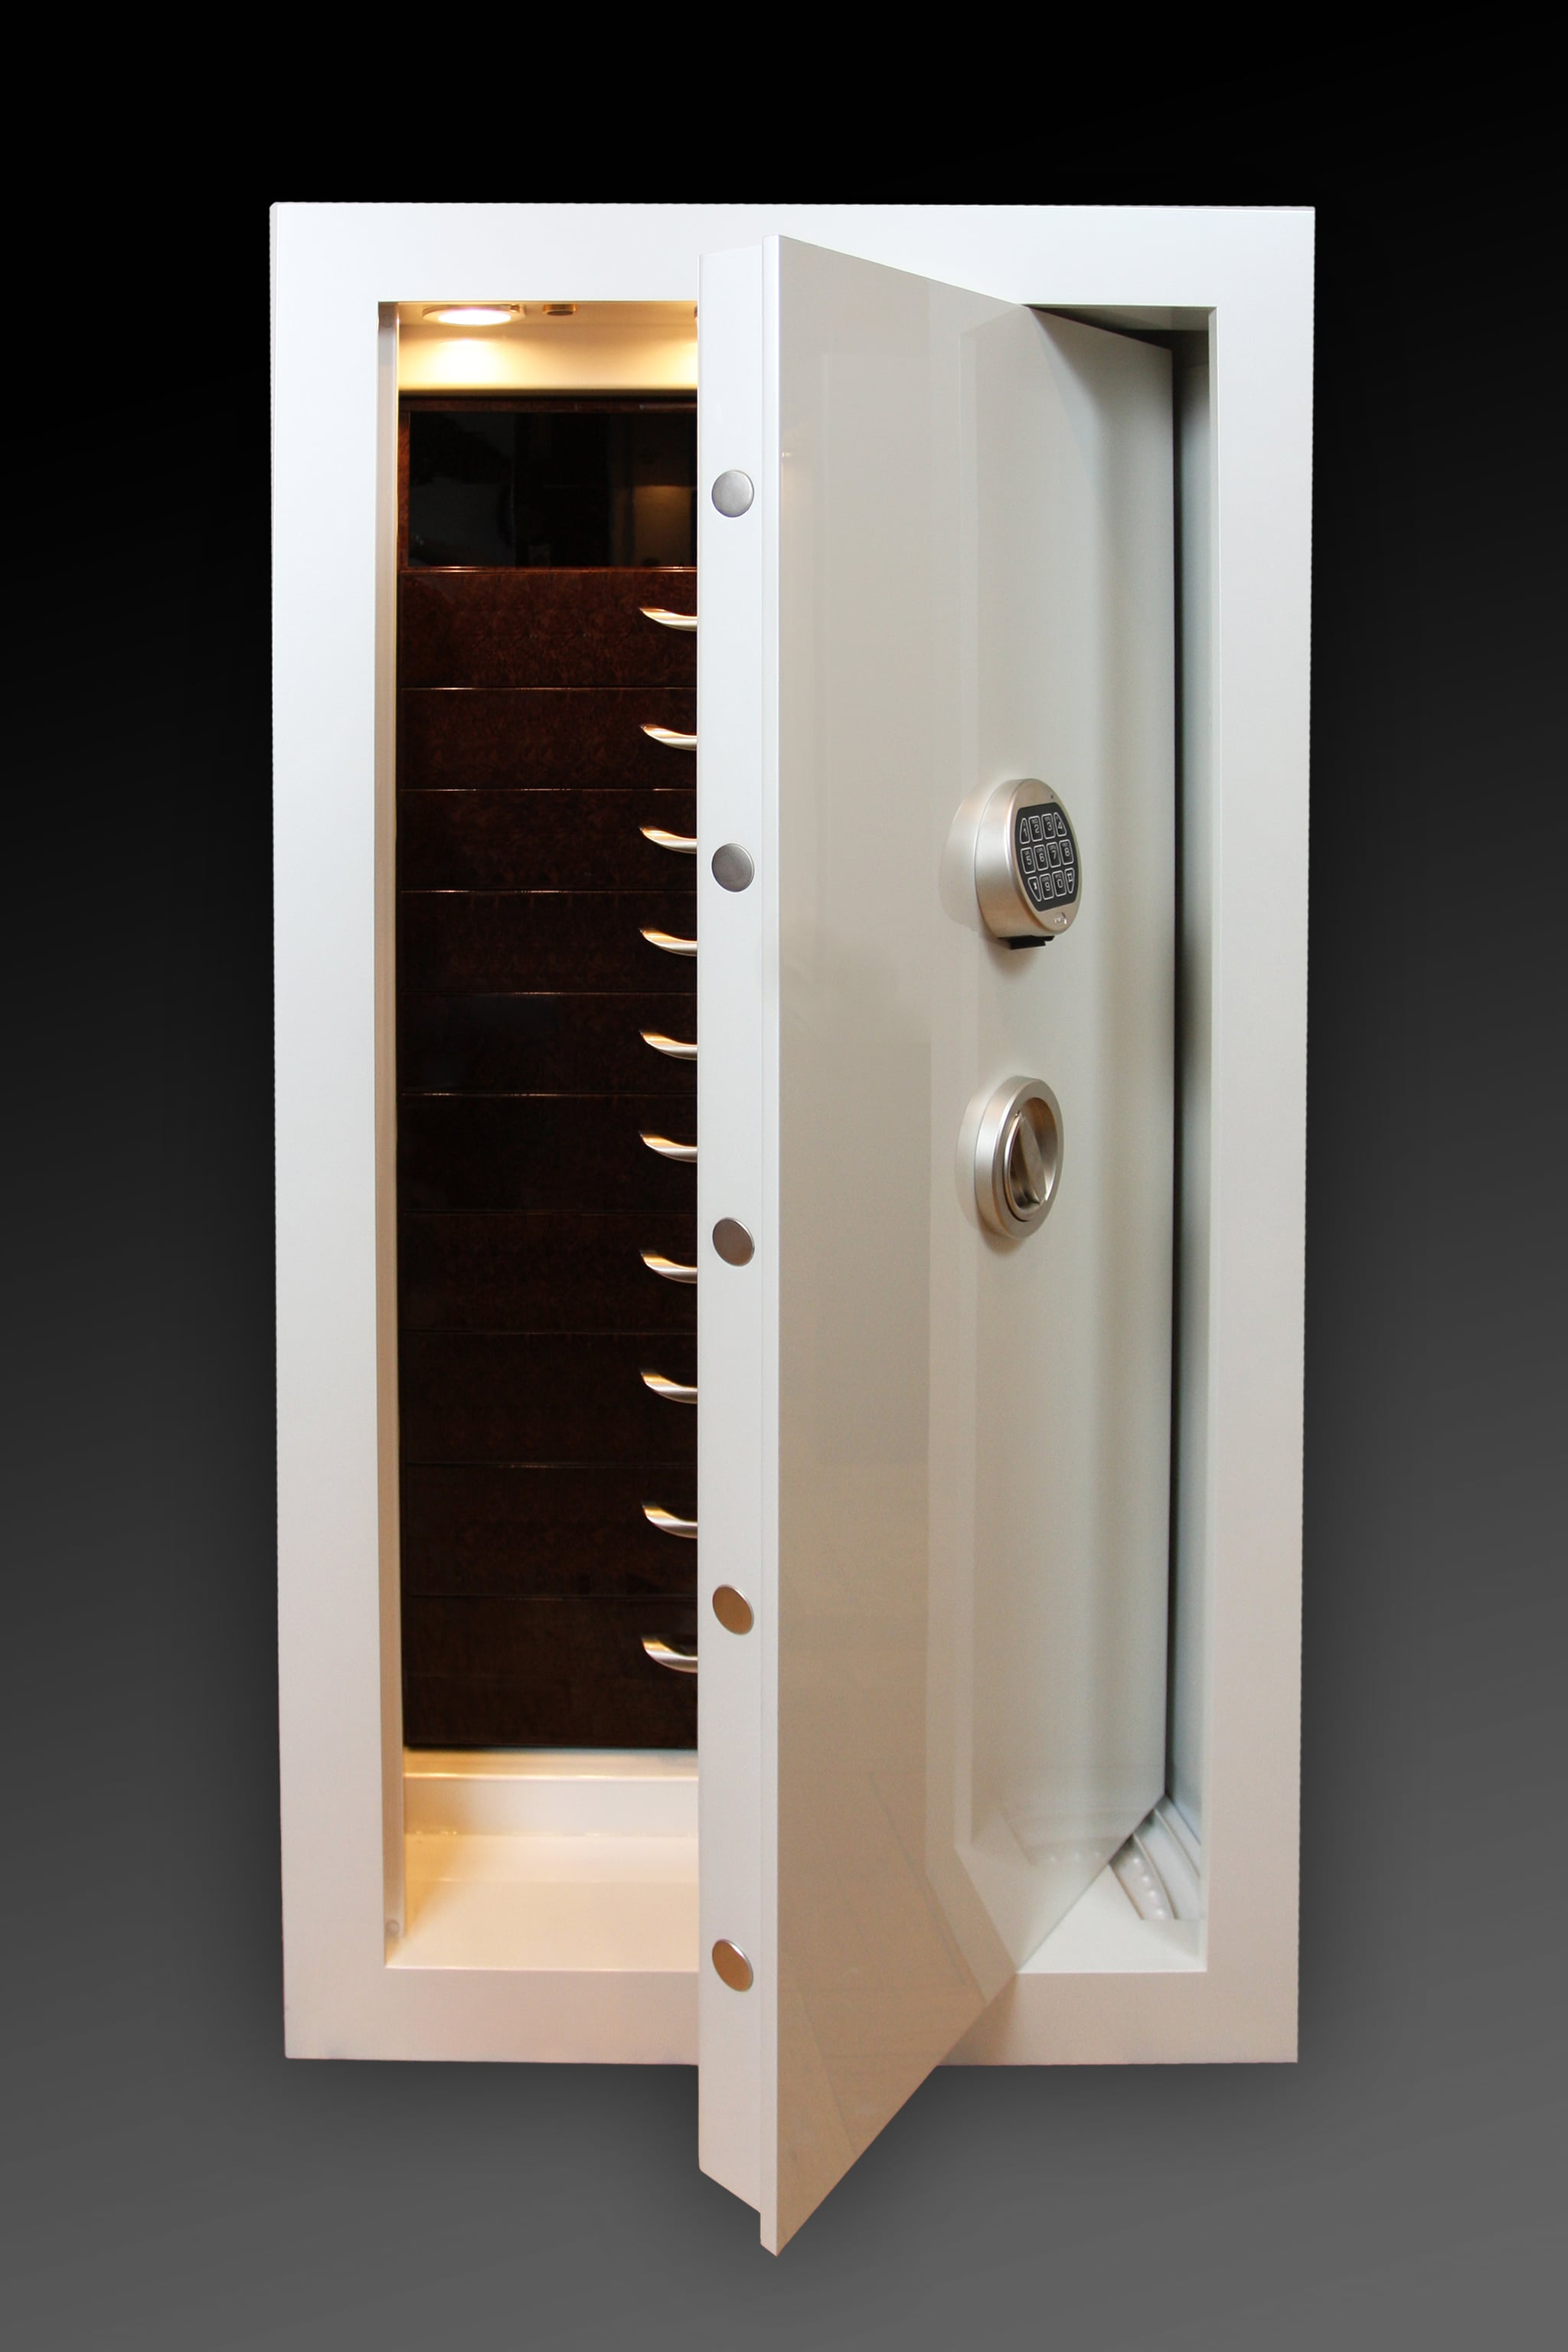 mirror in sophisticated for custom how closet store secret safes to hidden a door hide hiding safe